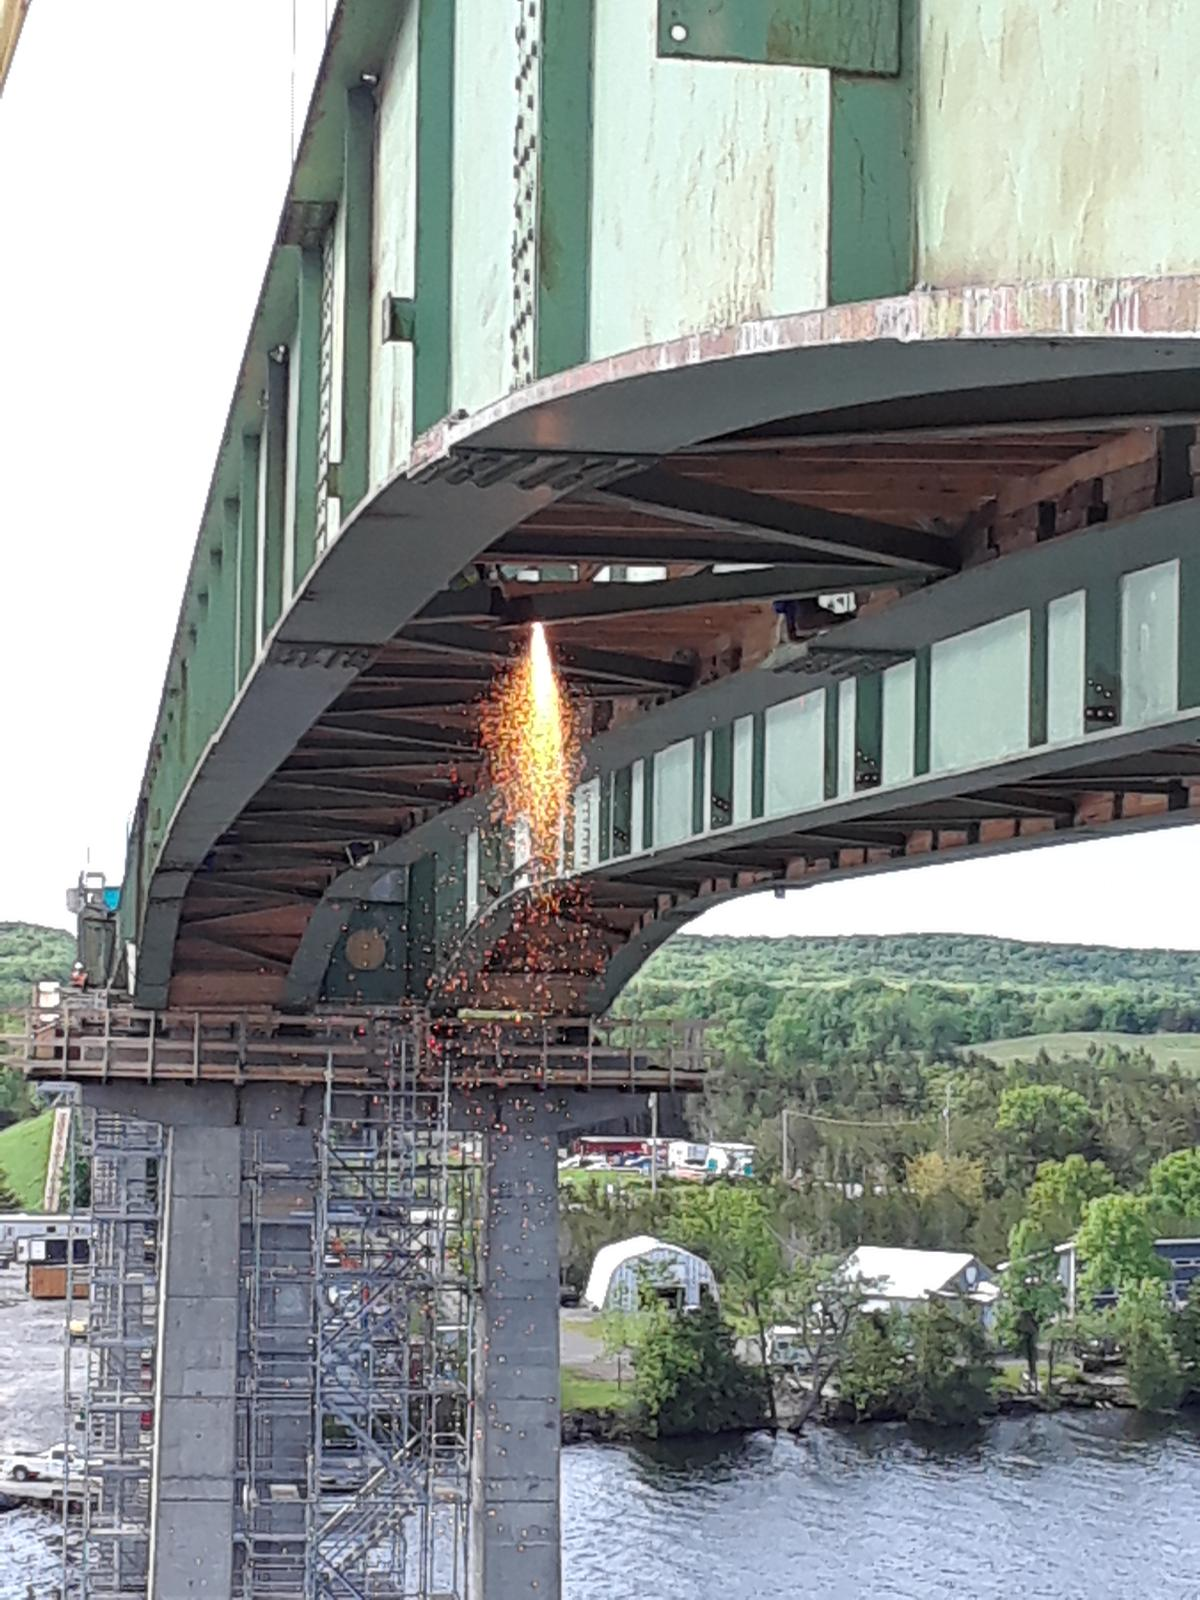 Girder bracing being cut for removal